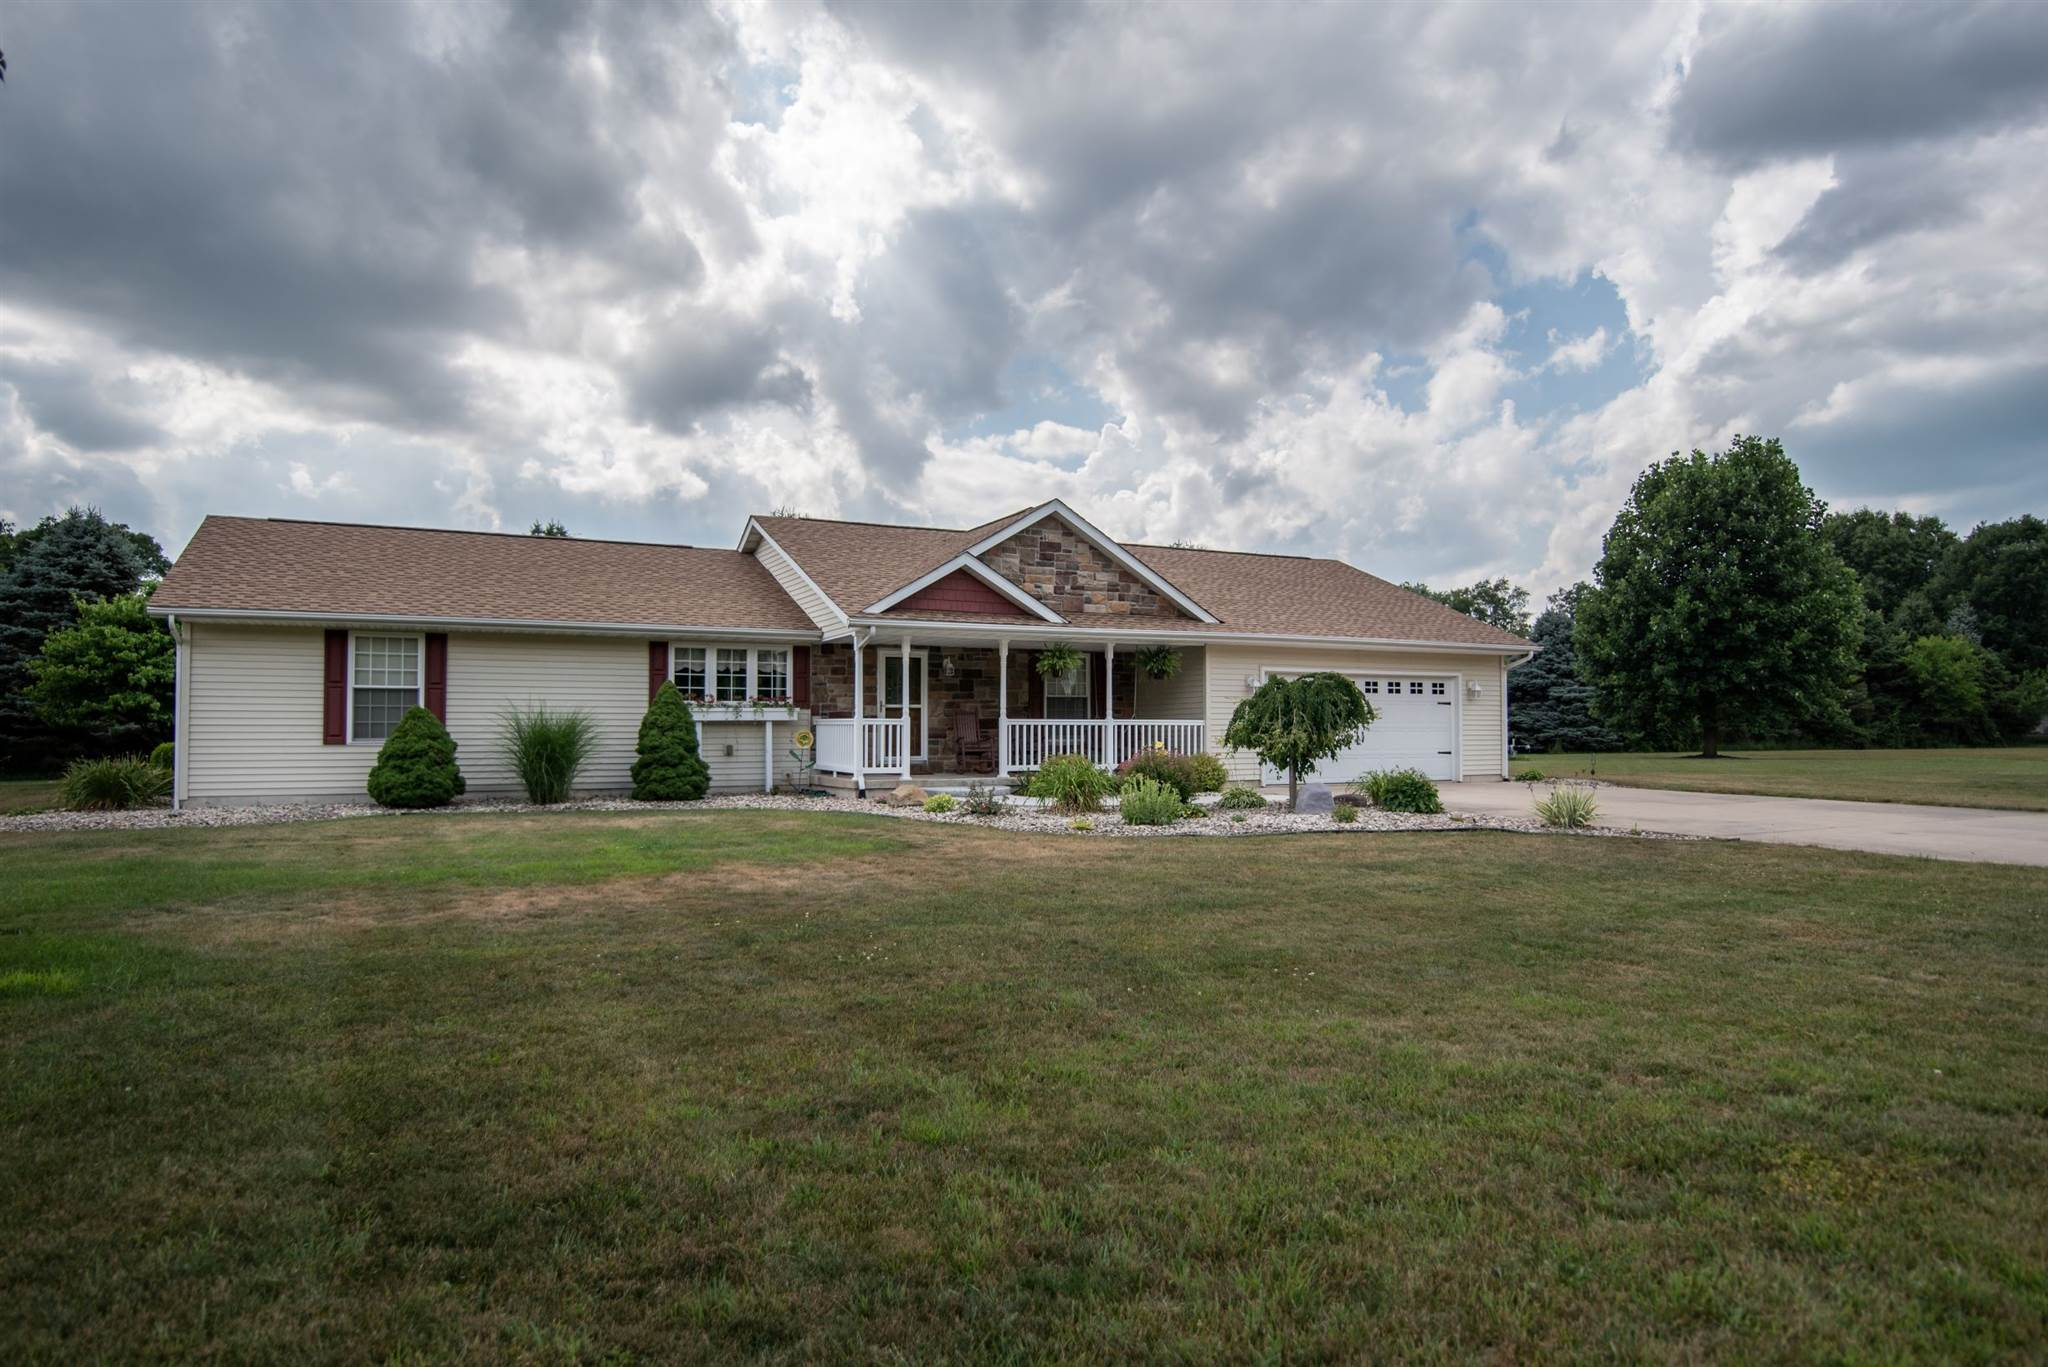 17103 River Ridge Road, Tippecanoe, IN 46570